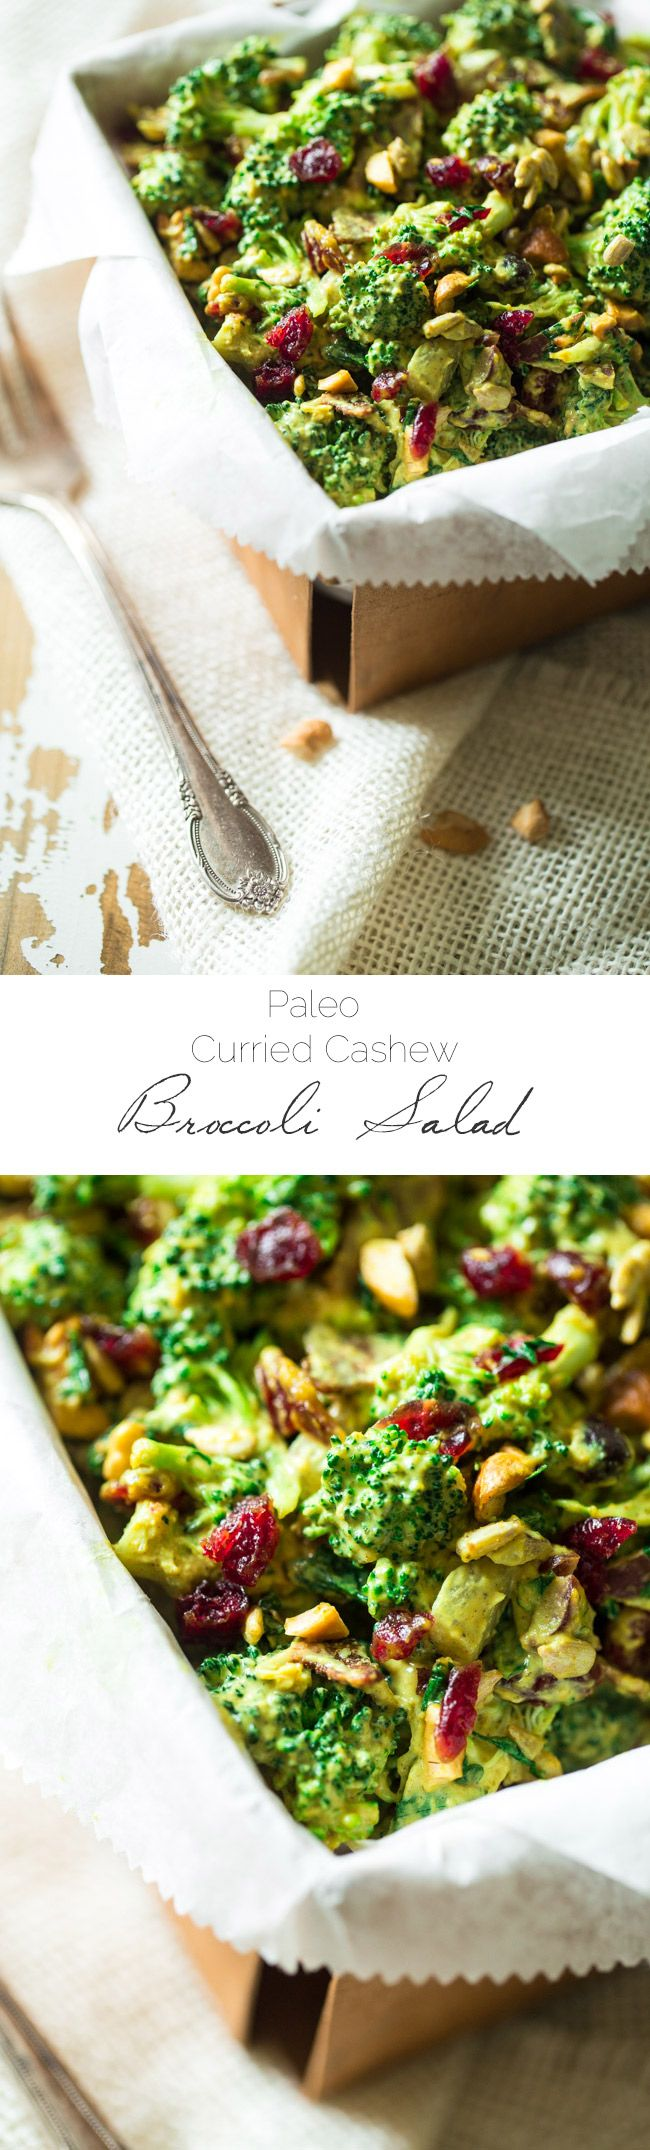 Curried Cashew Broccoli Salad